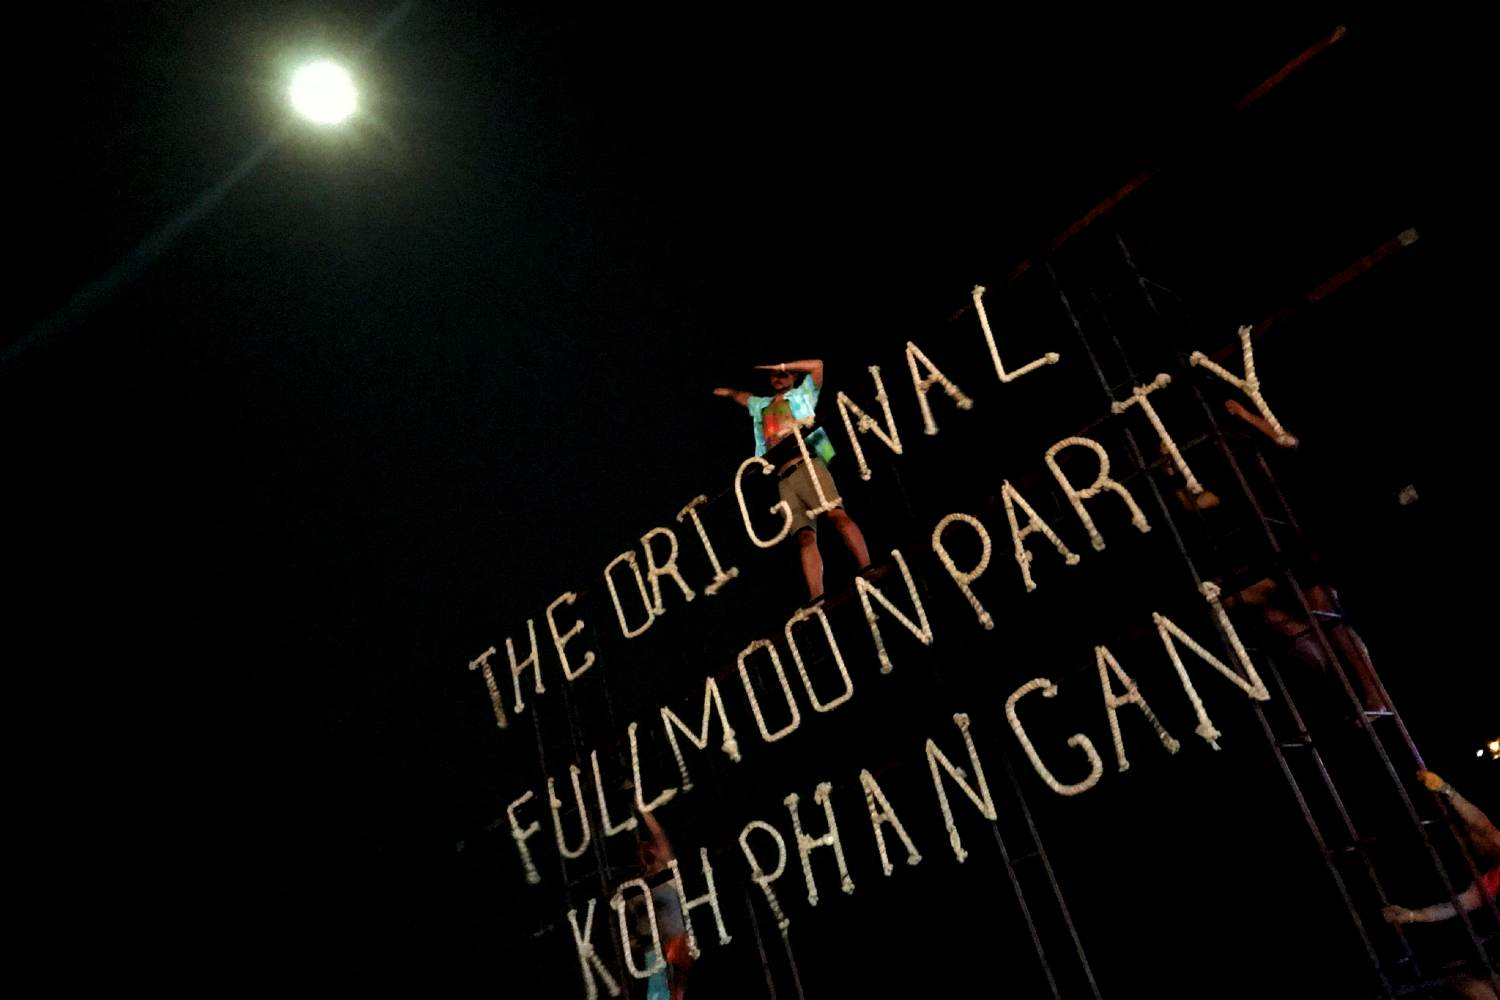 Letters with The Original Full Moon Party Koh Phangan lit later during the party